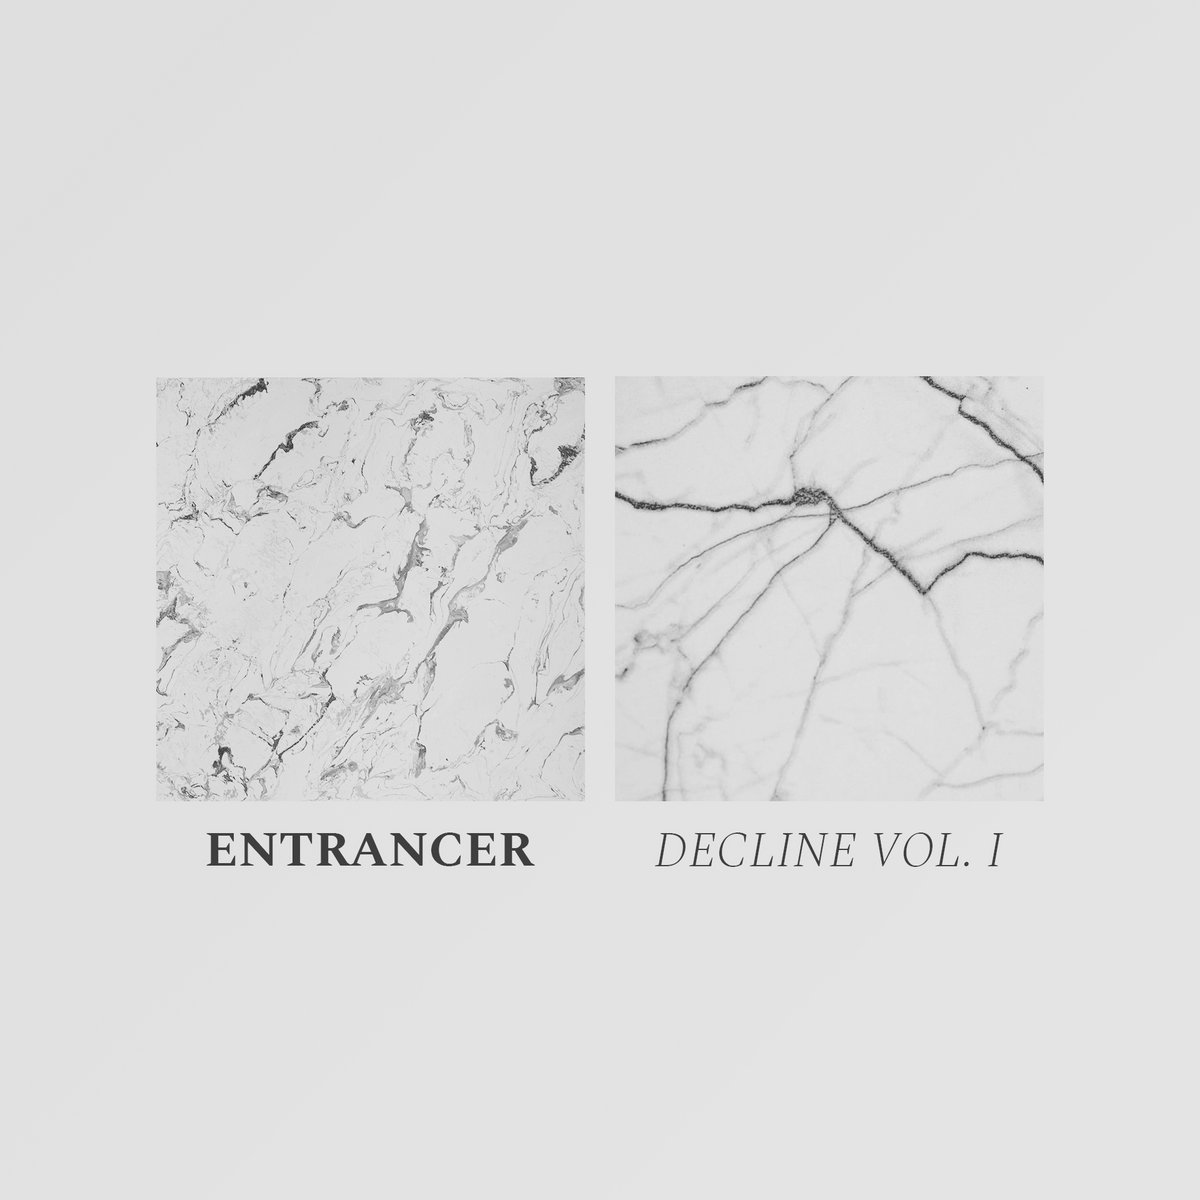 Entrancer - Decline Vol. 1